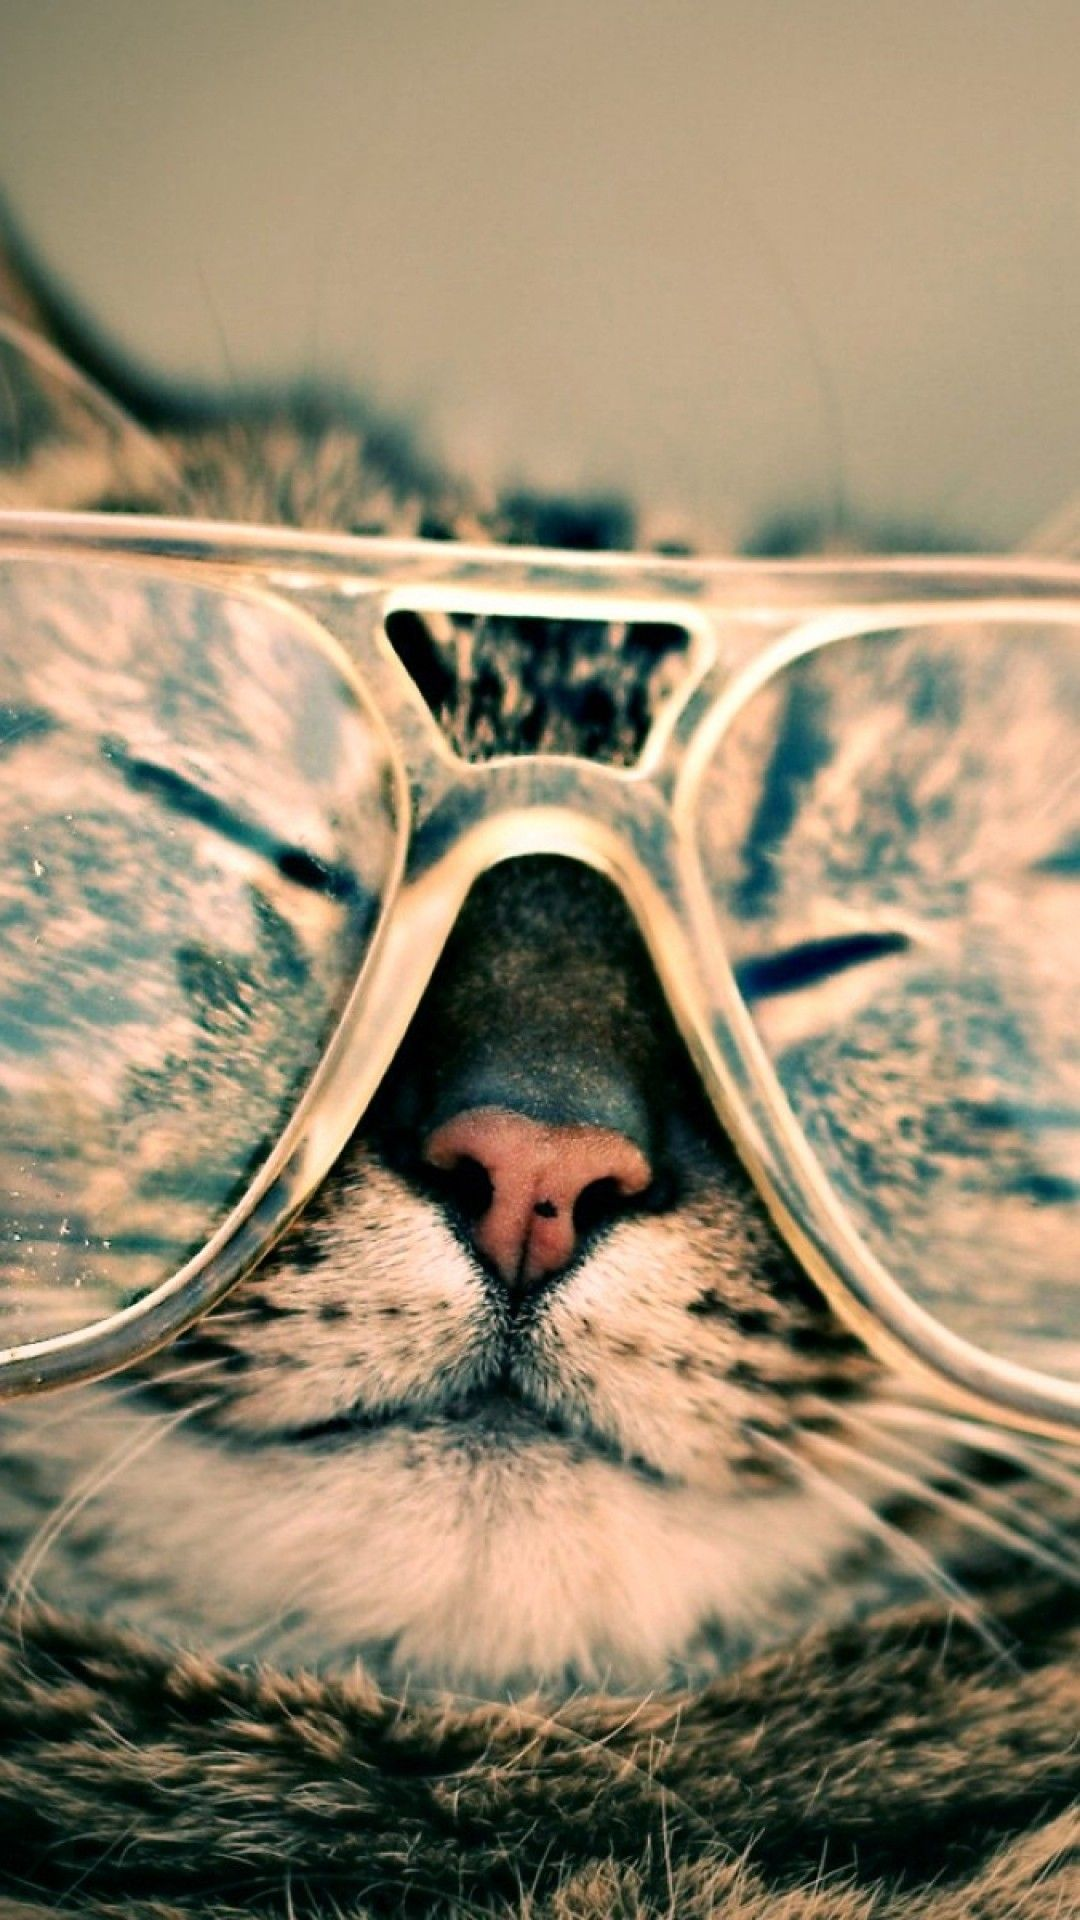 Animals Iphone 6 Plus Wallpapers Funny Cat Eye Glasses Iphone 6 Plus Hd Wallpaper Cat Glasses Hipster Cat Cat Wearing Glasses